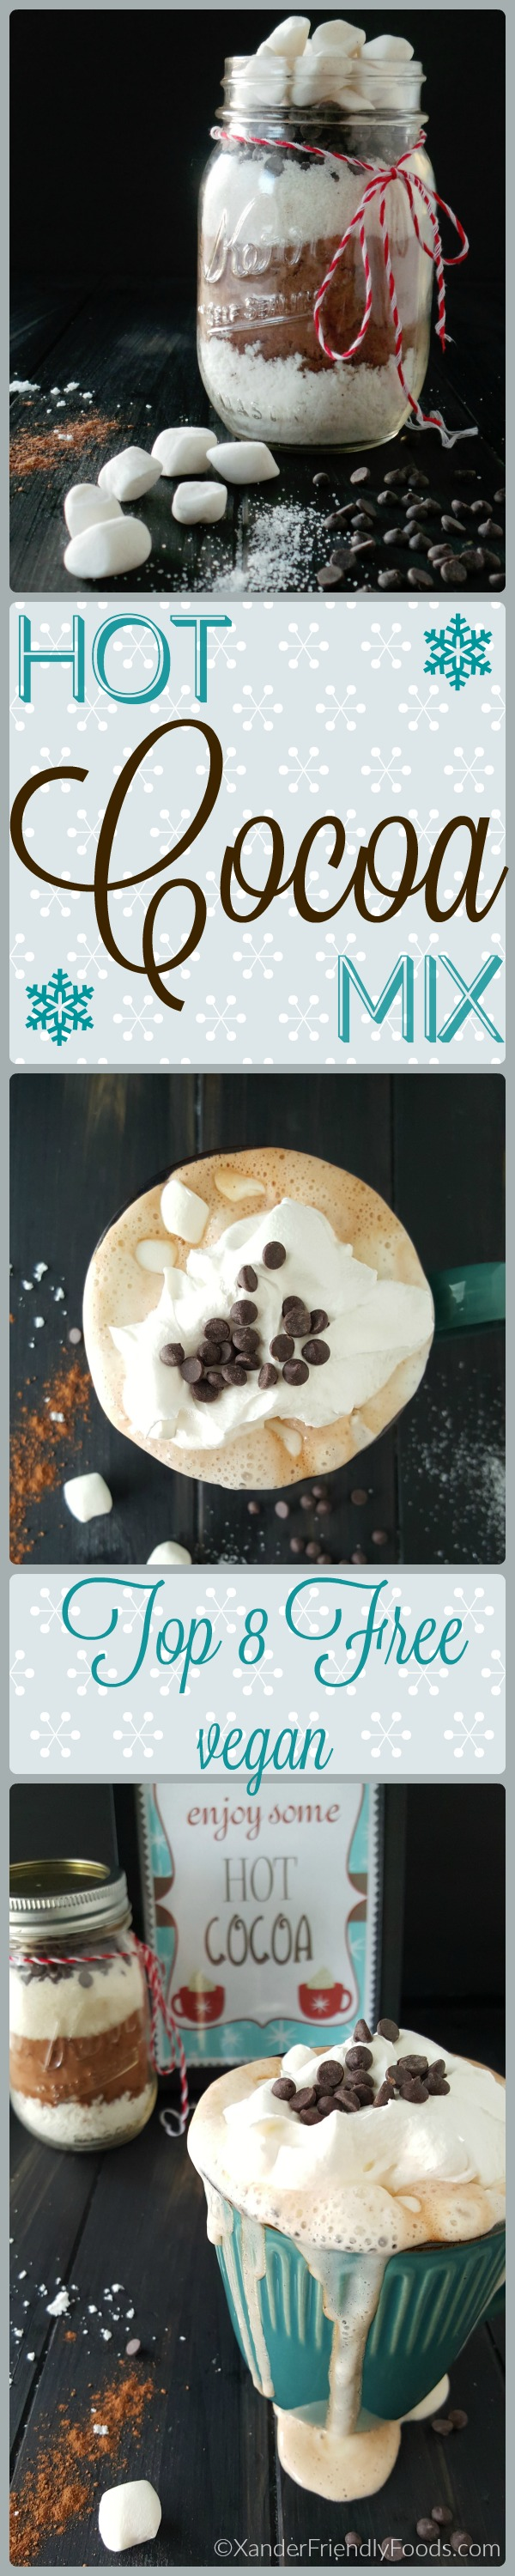 Deliciously dairy-free Hot Cocoa mix, perfect for 1 mug or 10. Top 8 free & vegan